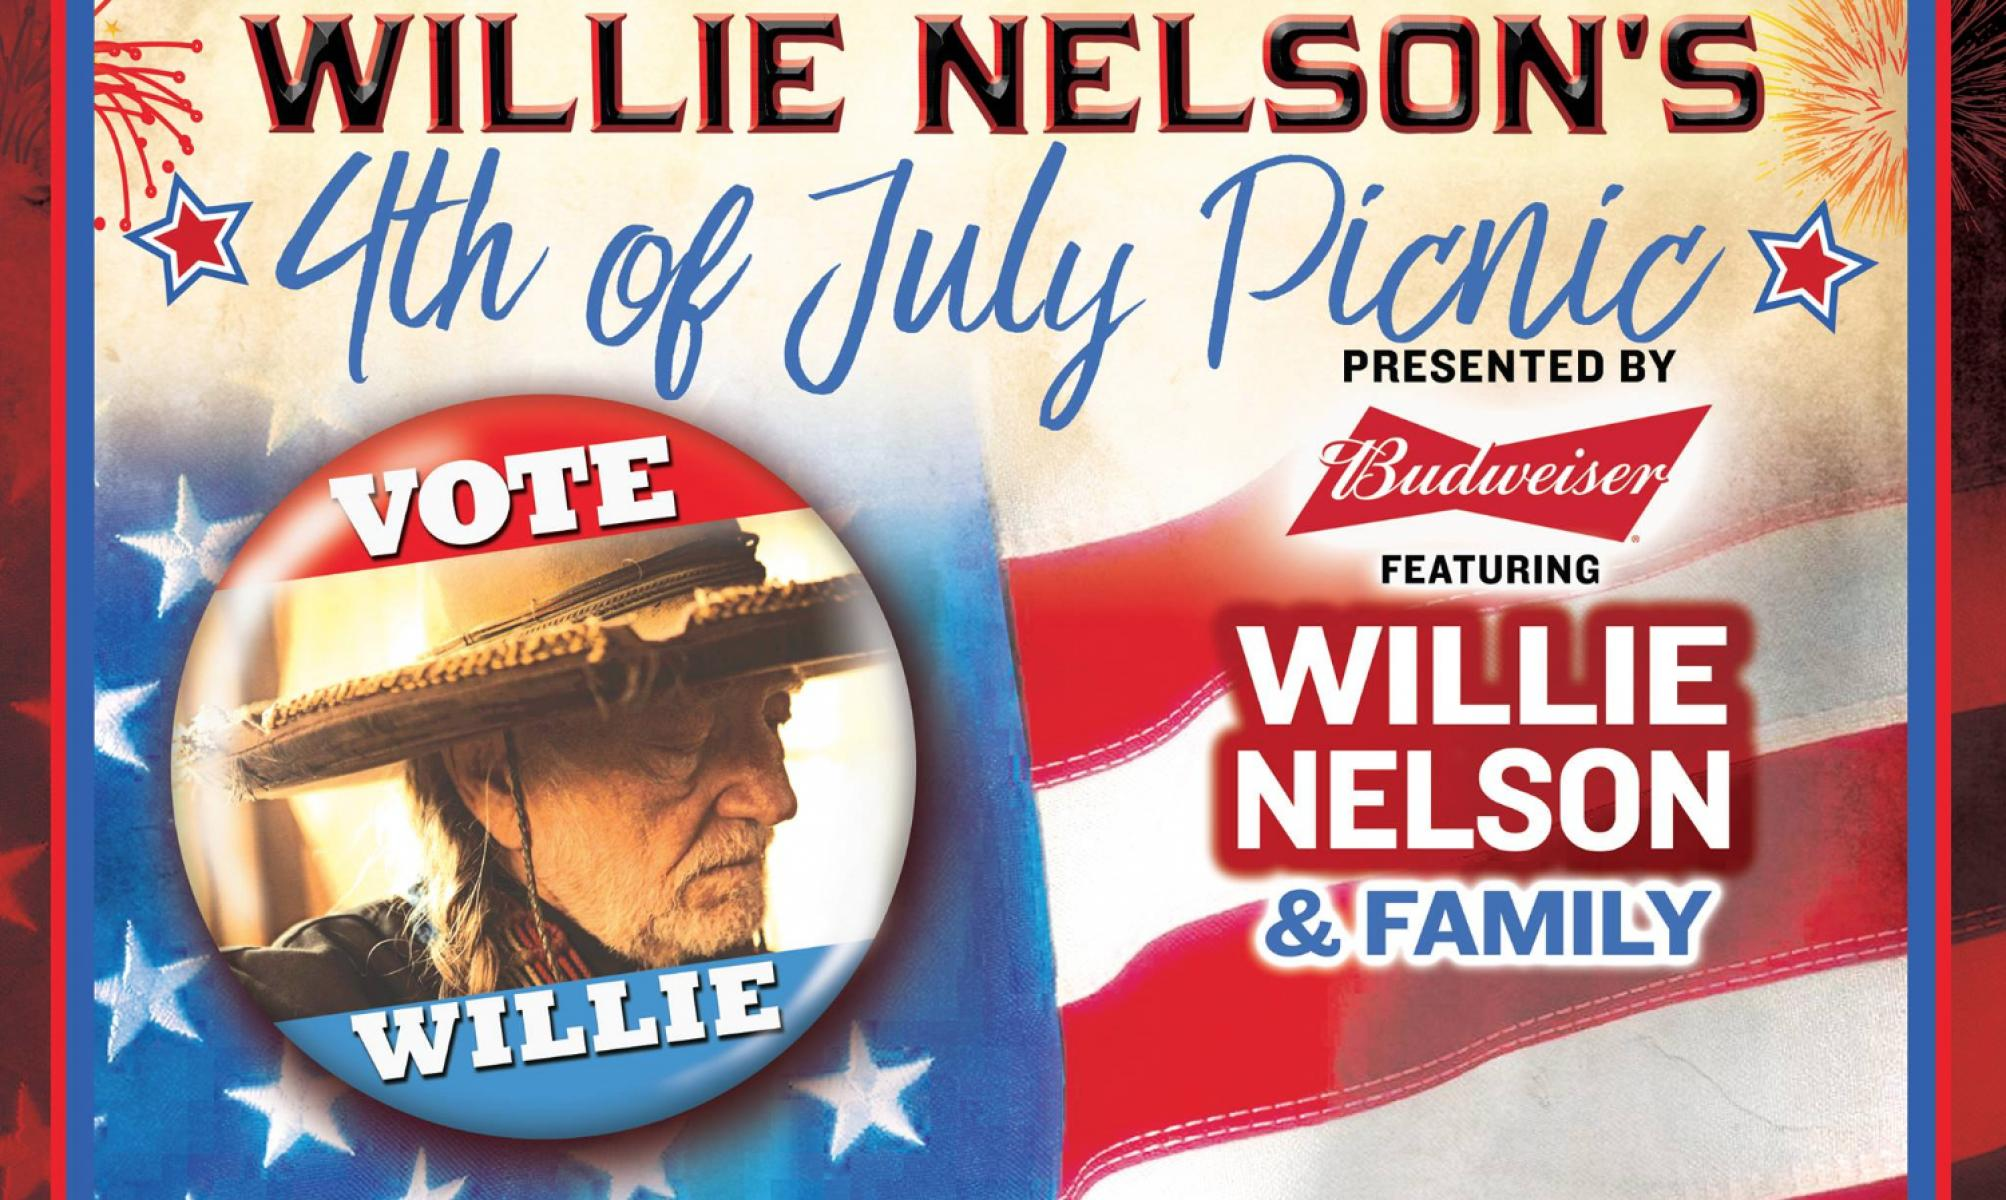 Willie Nelson S 4th Of July Picnic Austin Tx Jul 4